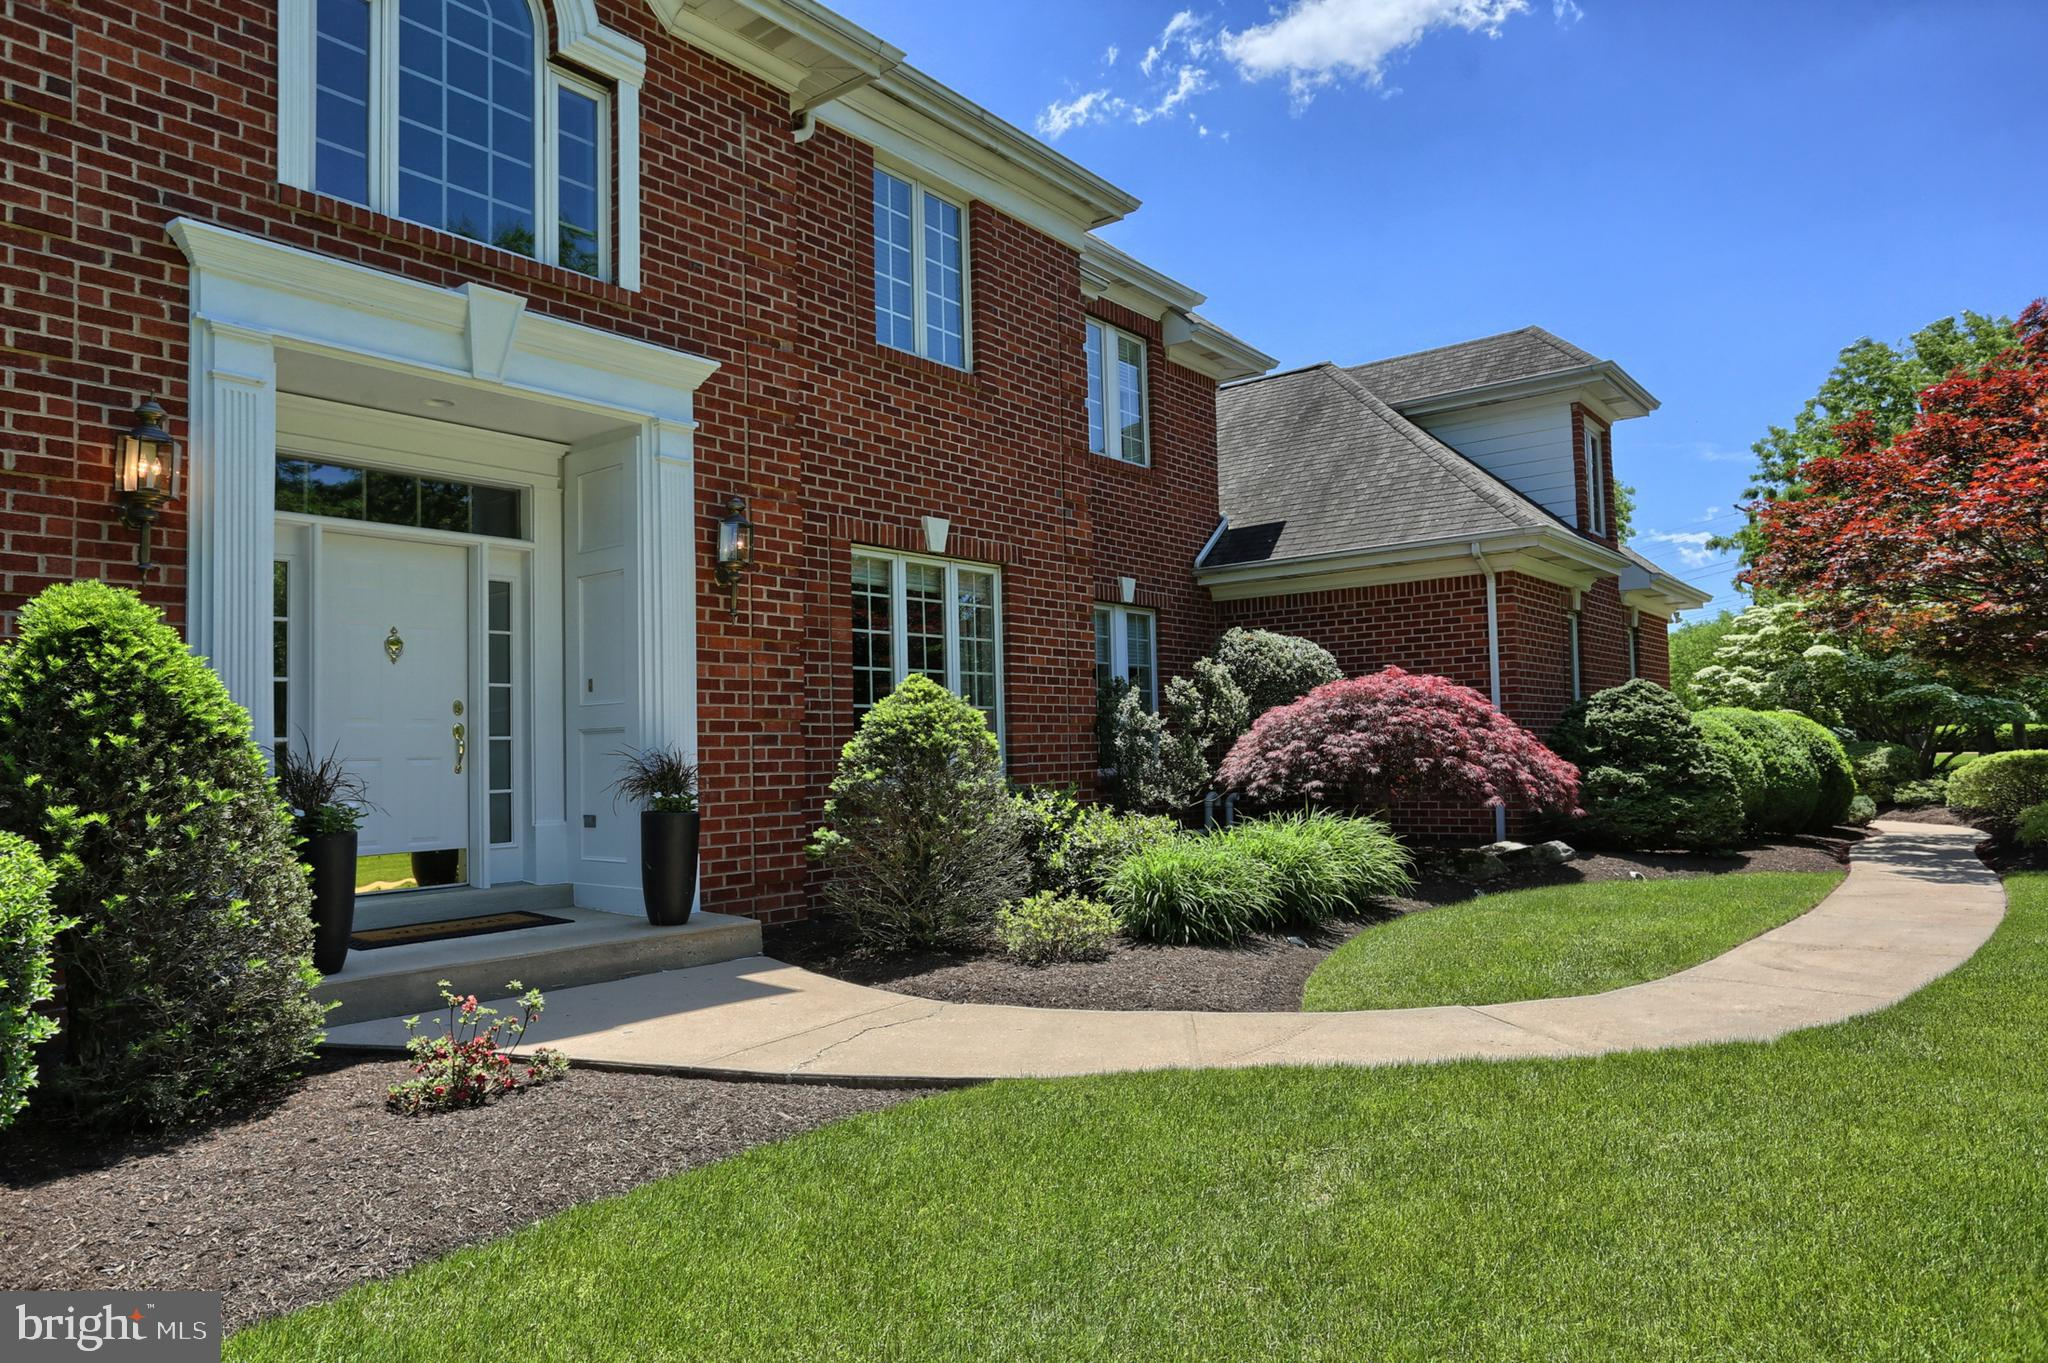 Homes for Sale in Hummelstown | Brownstone Real Estate Company